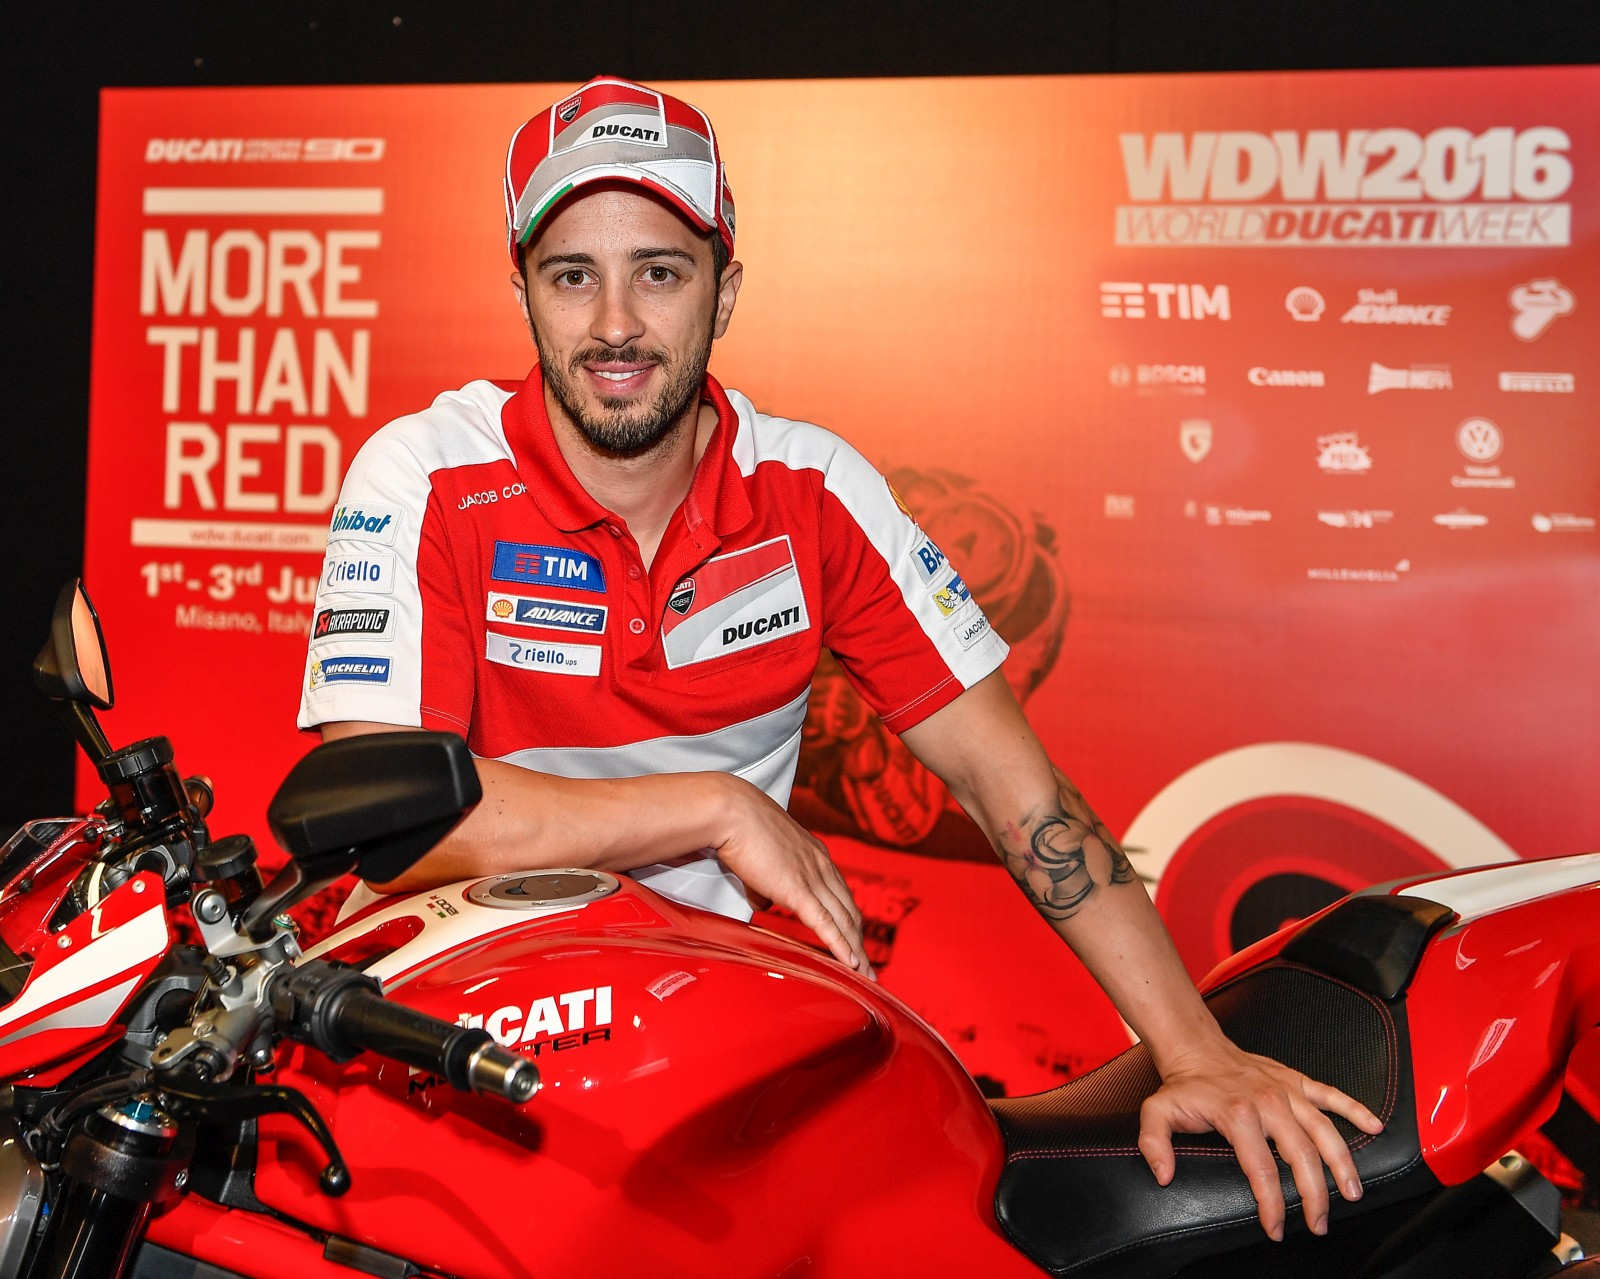 2016 World Ducati Week (3)